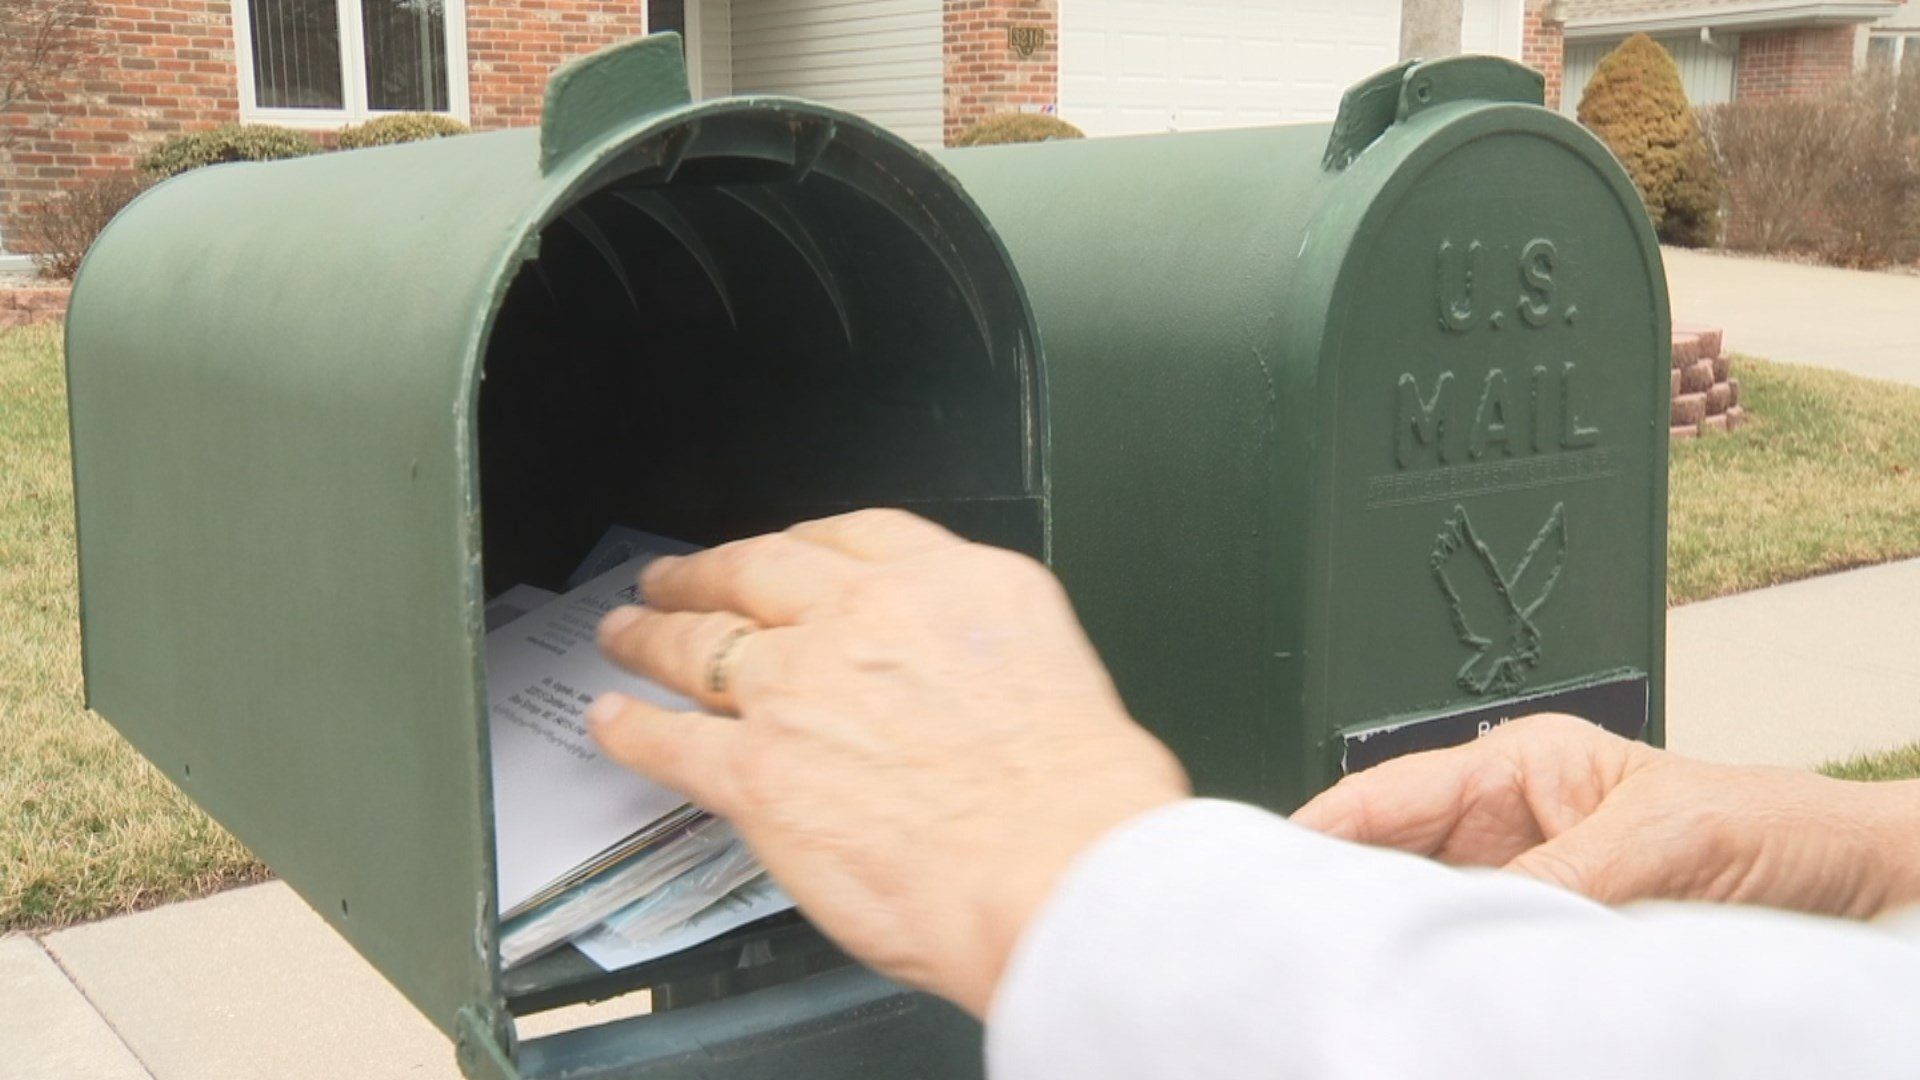 A quiet Independence neighborhood says they are the target of nasty thieves who realize many of them still write checks. (KCTV5)